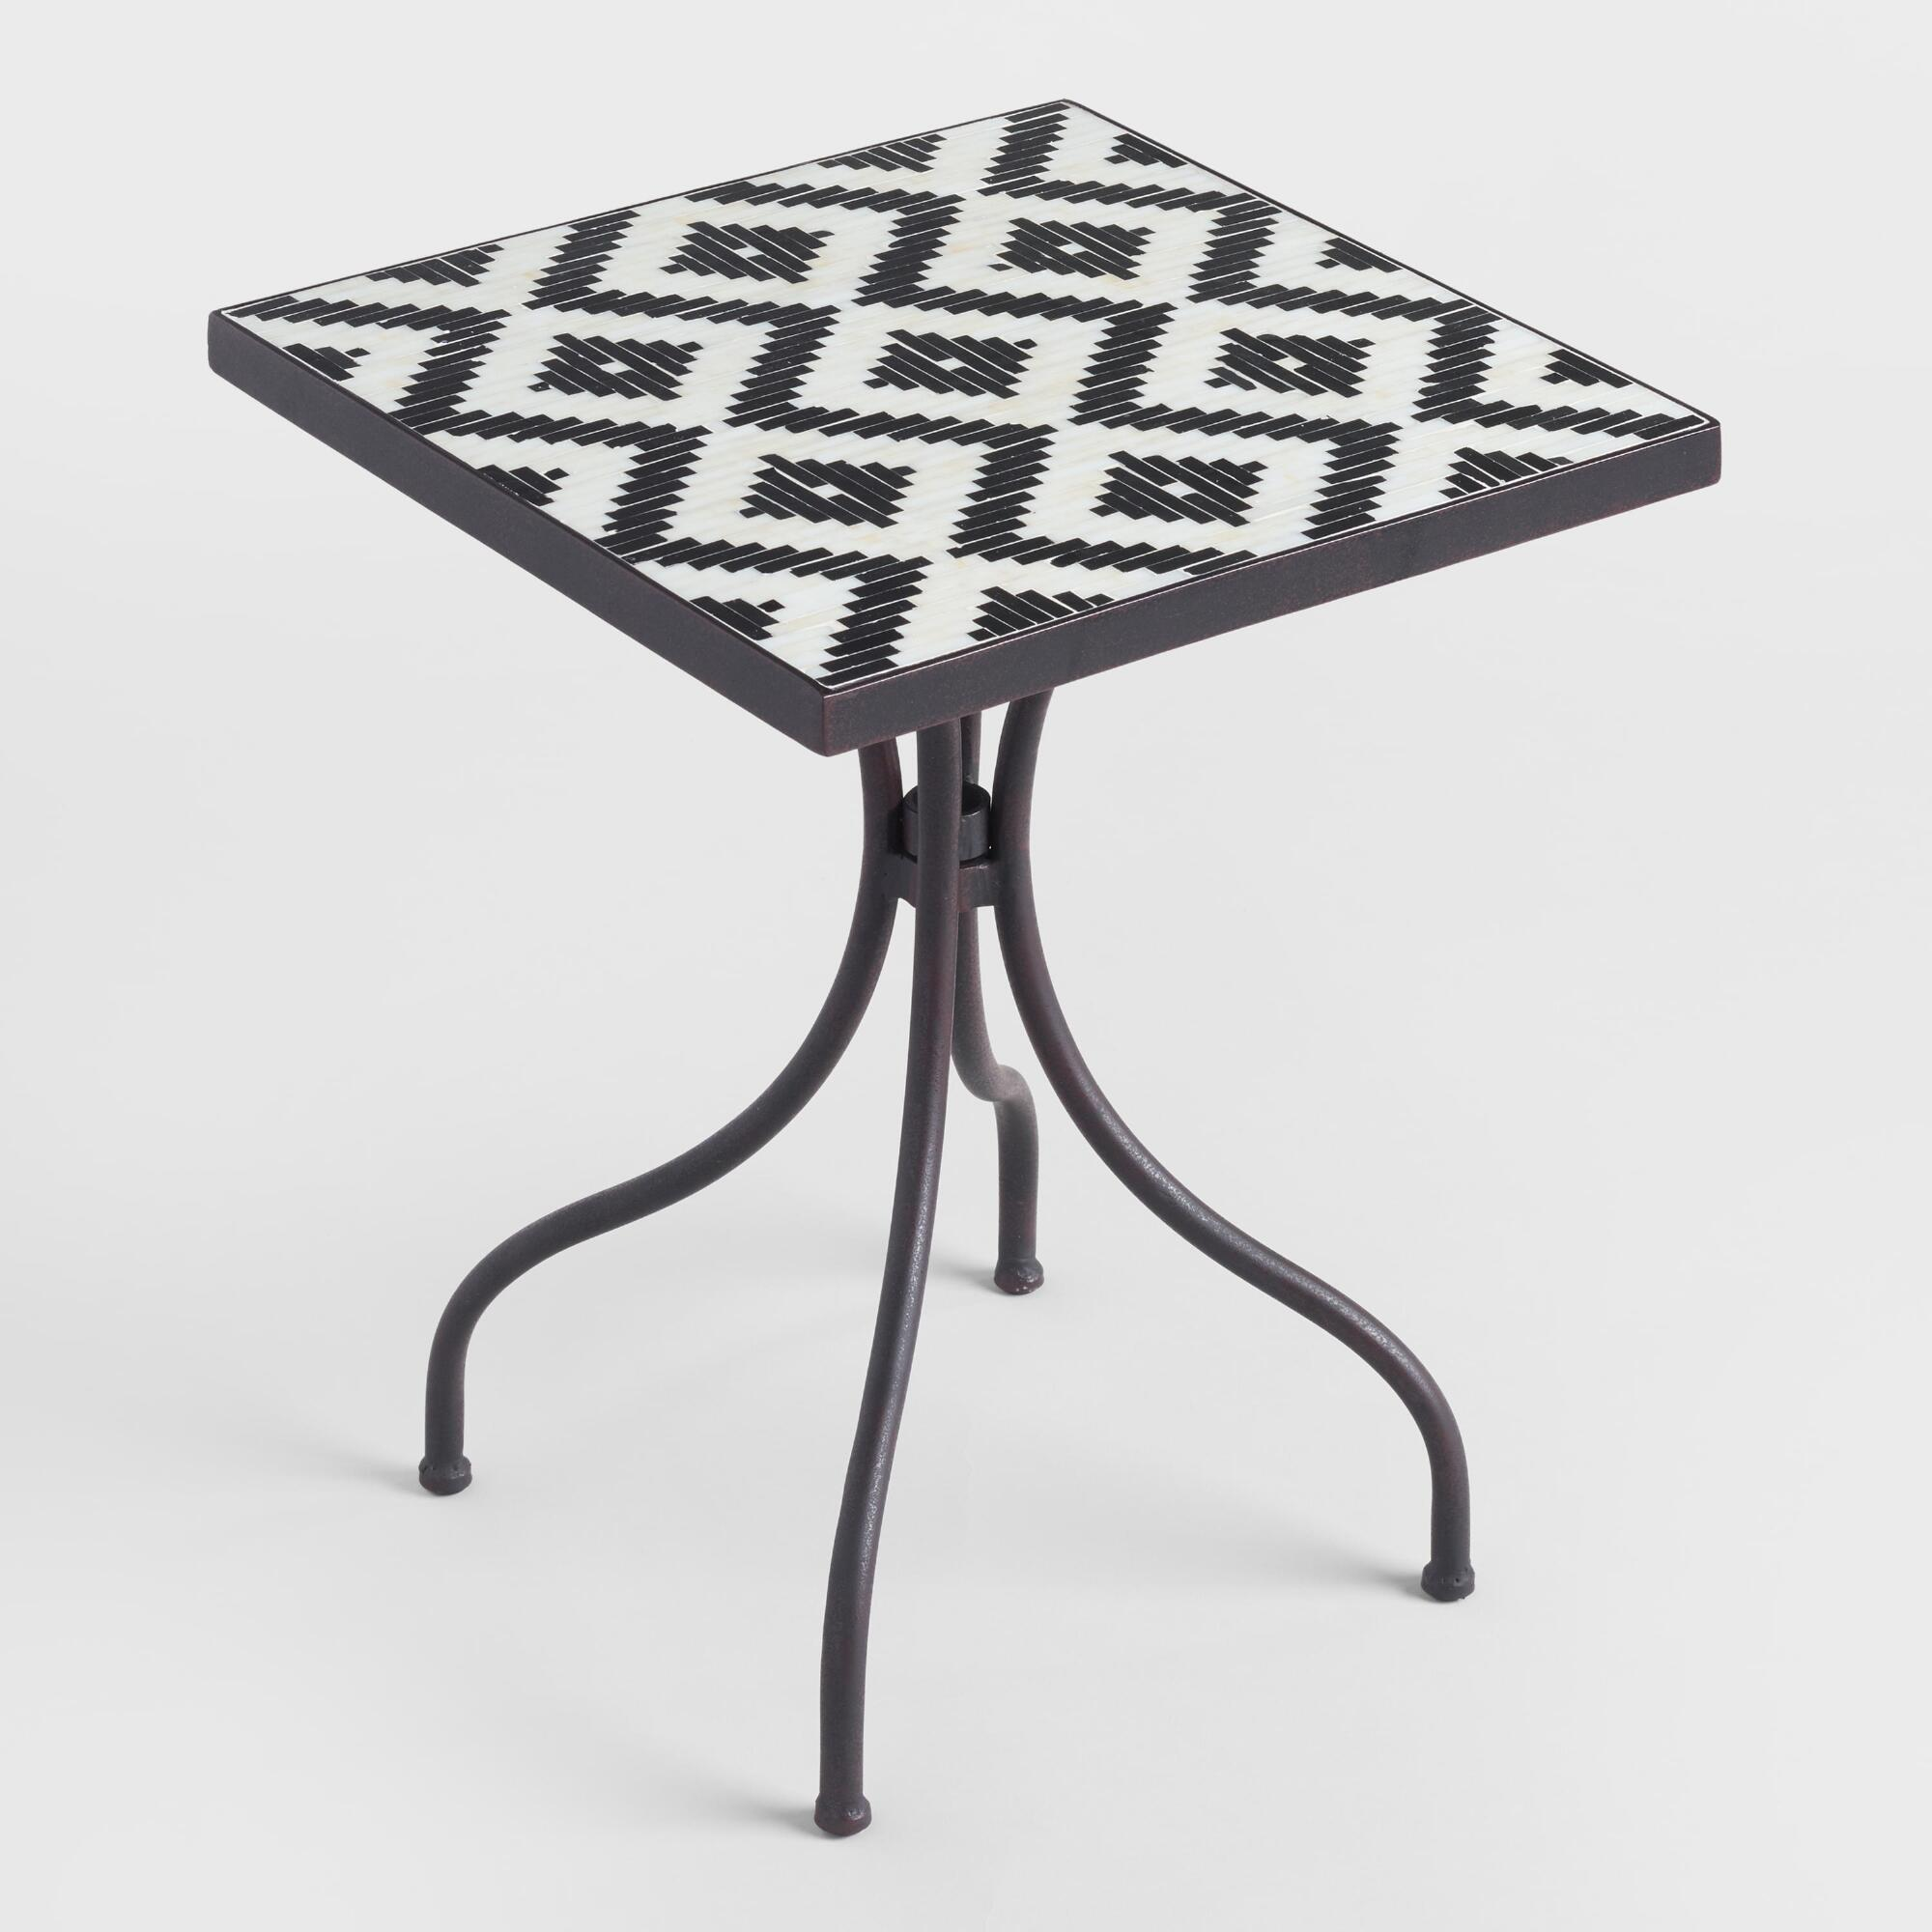 square black and white cadiz outdoor accent table world market iipsrv fcgi threshold mosaic large round mirror pottery barn leather sofa apothecary chest antique tiffany turtle